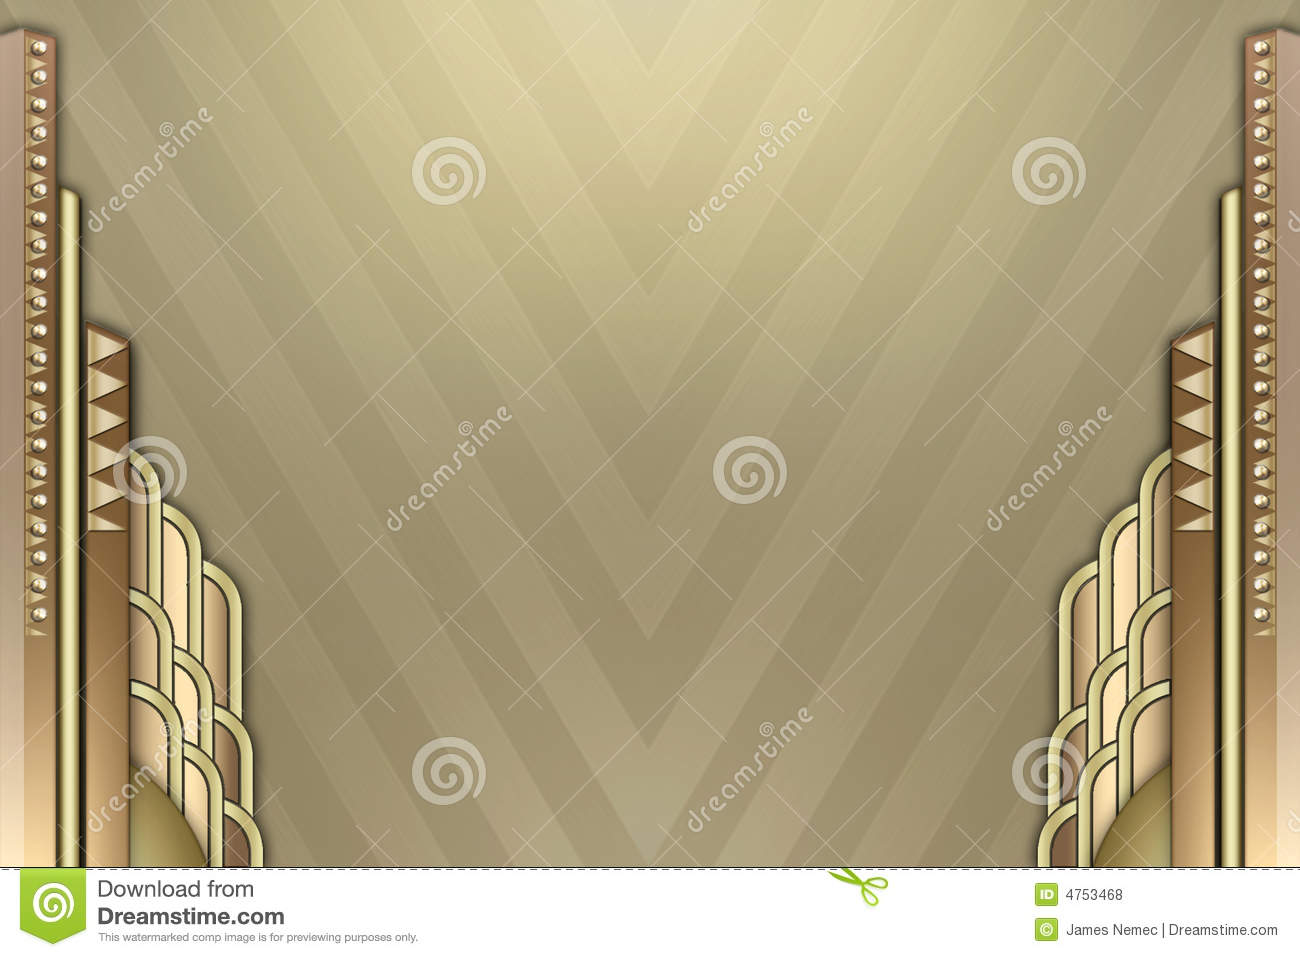 Art Deco Building Border Royalty Free Stock Photos Image